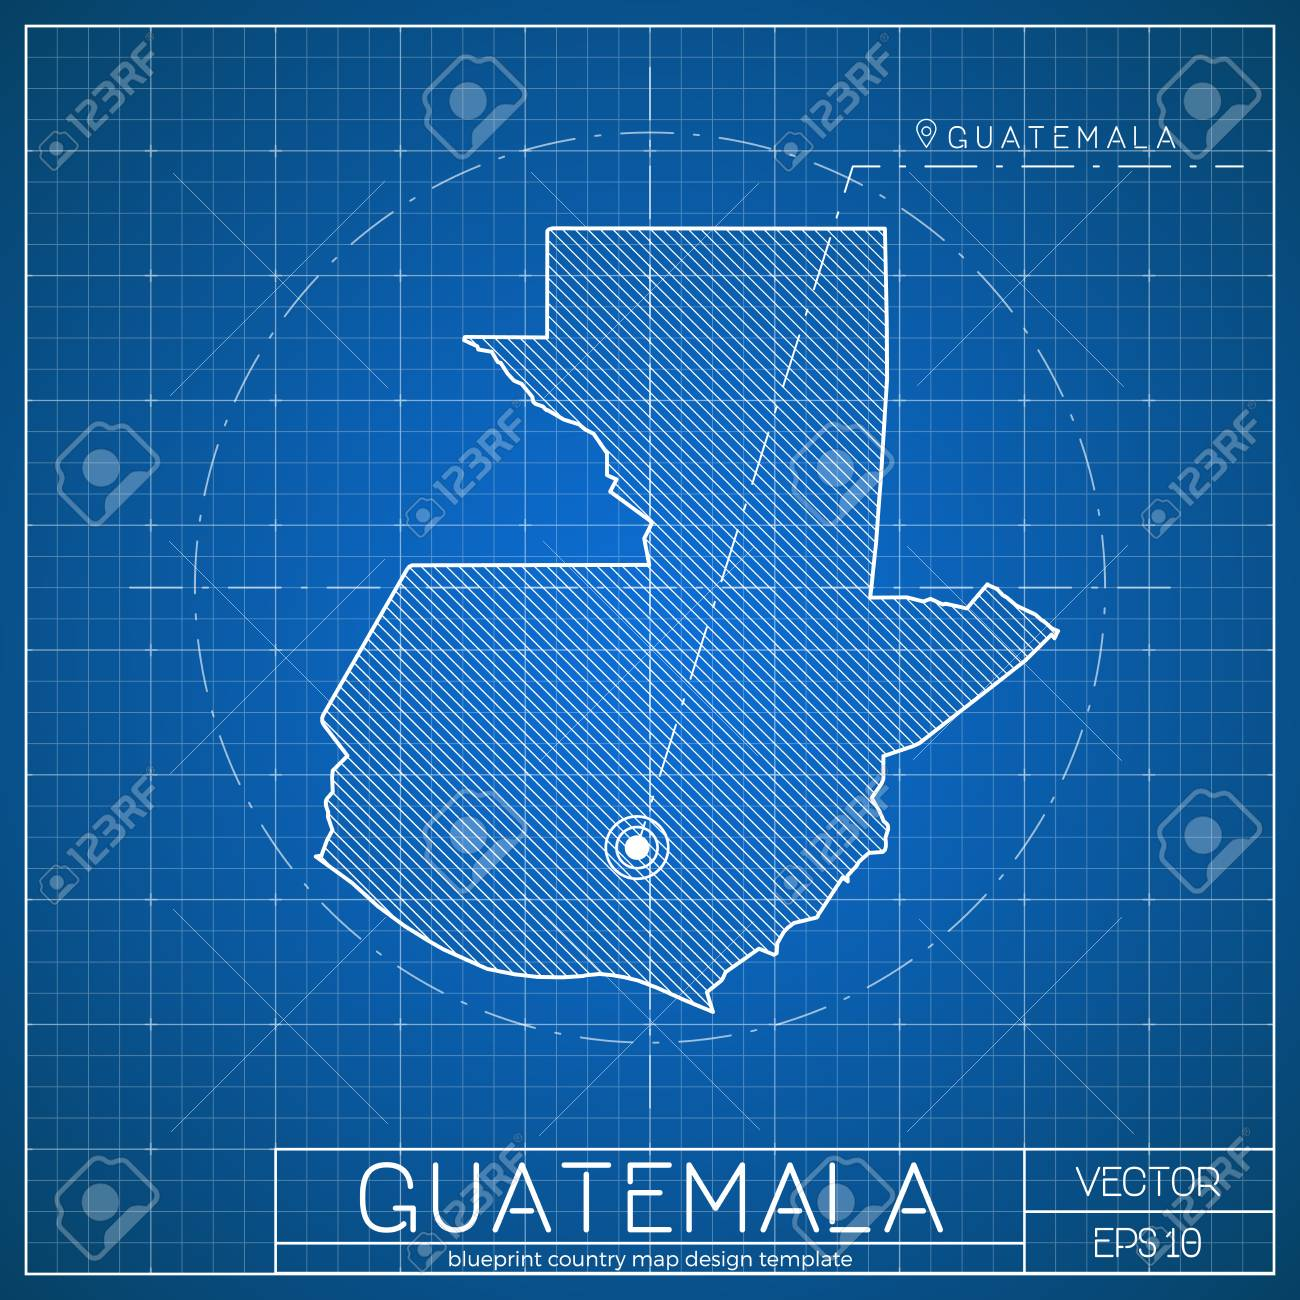 Picture of: Guatemala Blueprint Map Template With Capital City Guatemala Royalty Free Cliparts Vectors And Stock Illustration Image 100311289